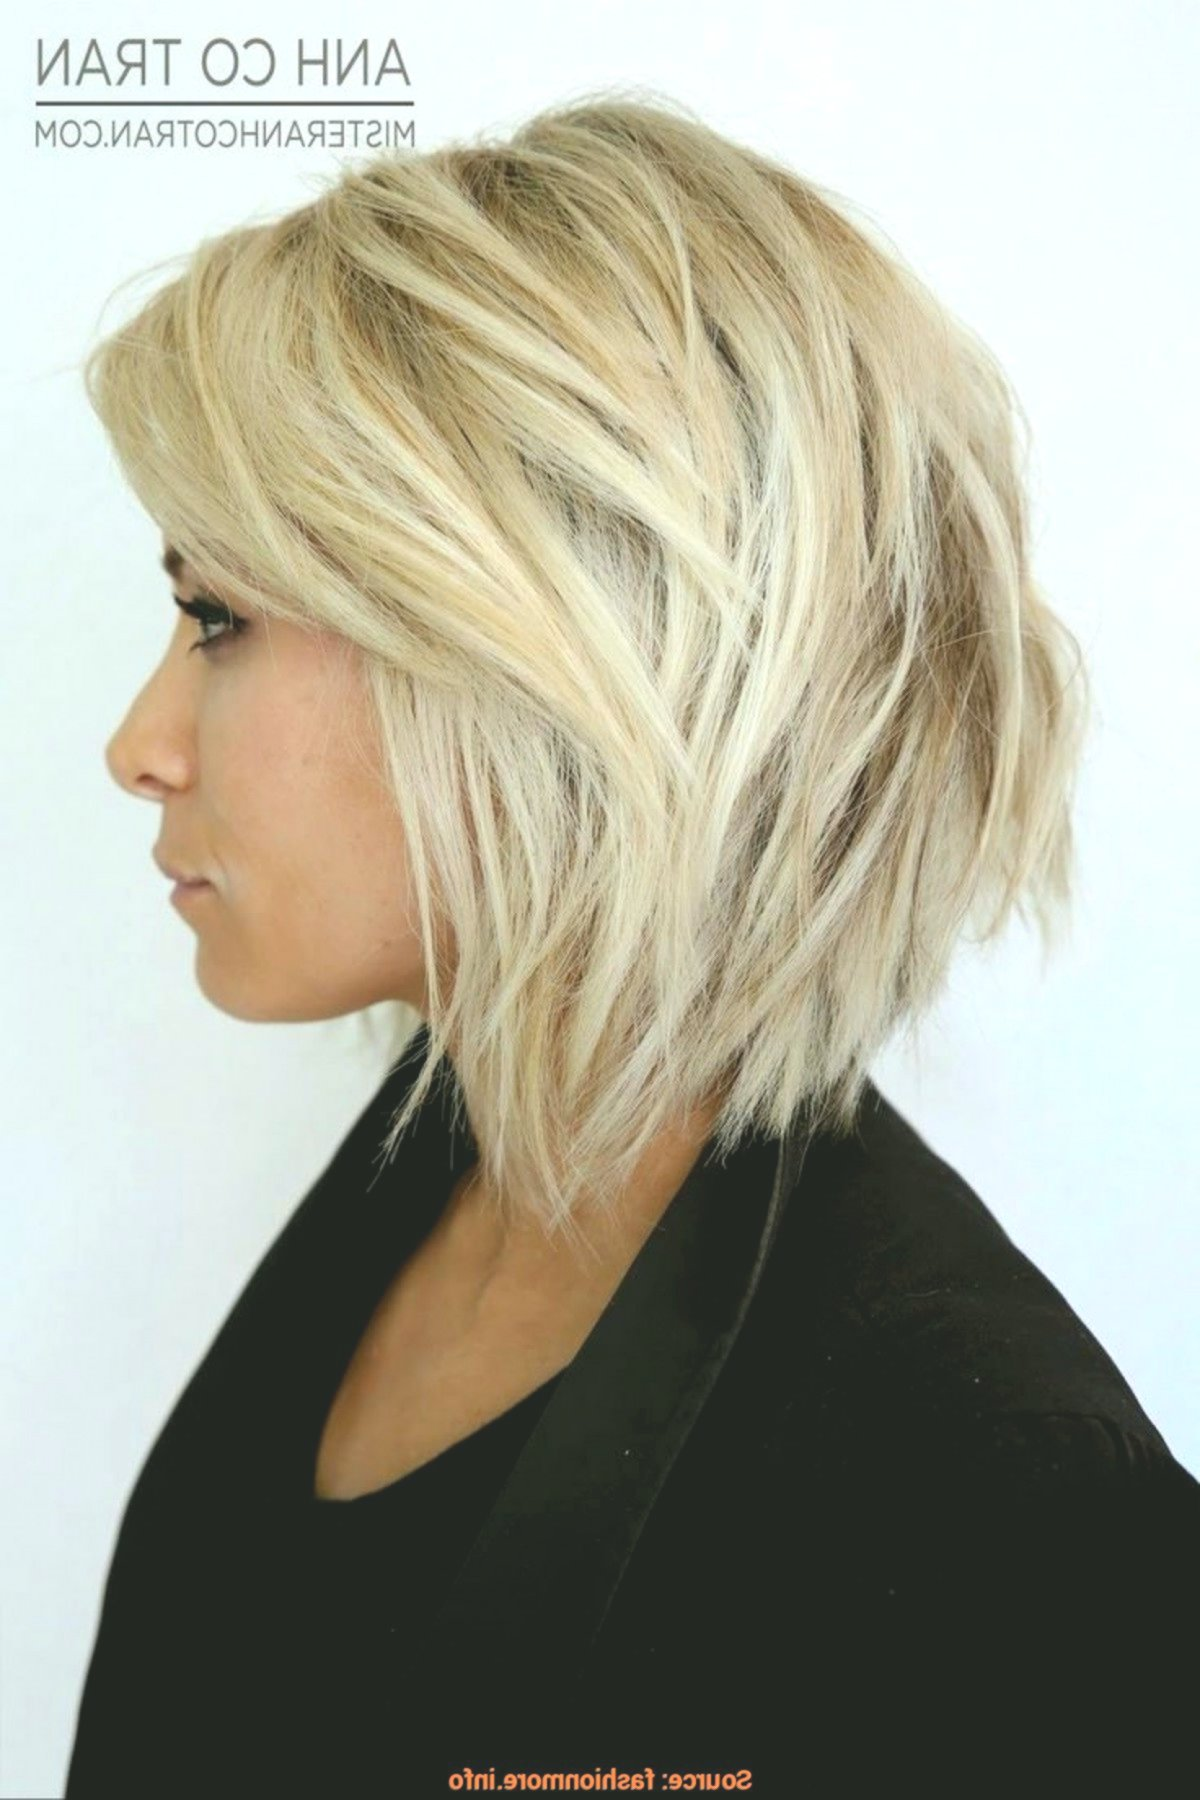 fascinatingly thick hair pattern-modern Thick Hair Inspiration